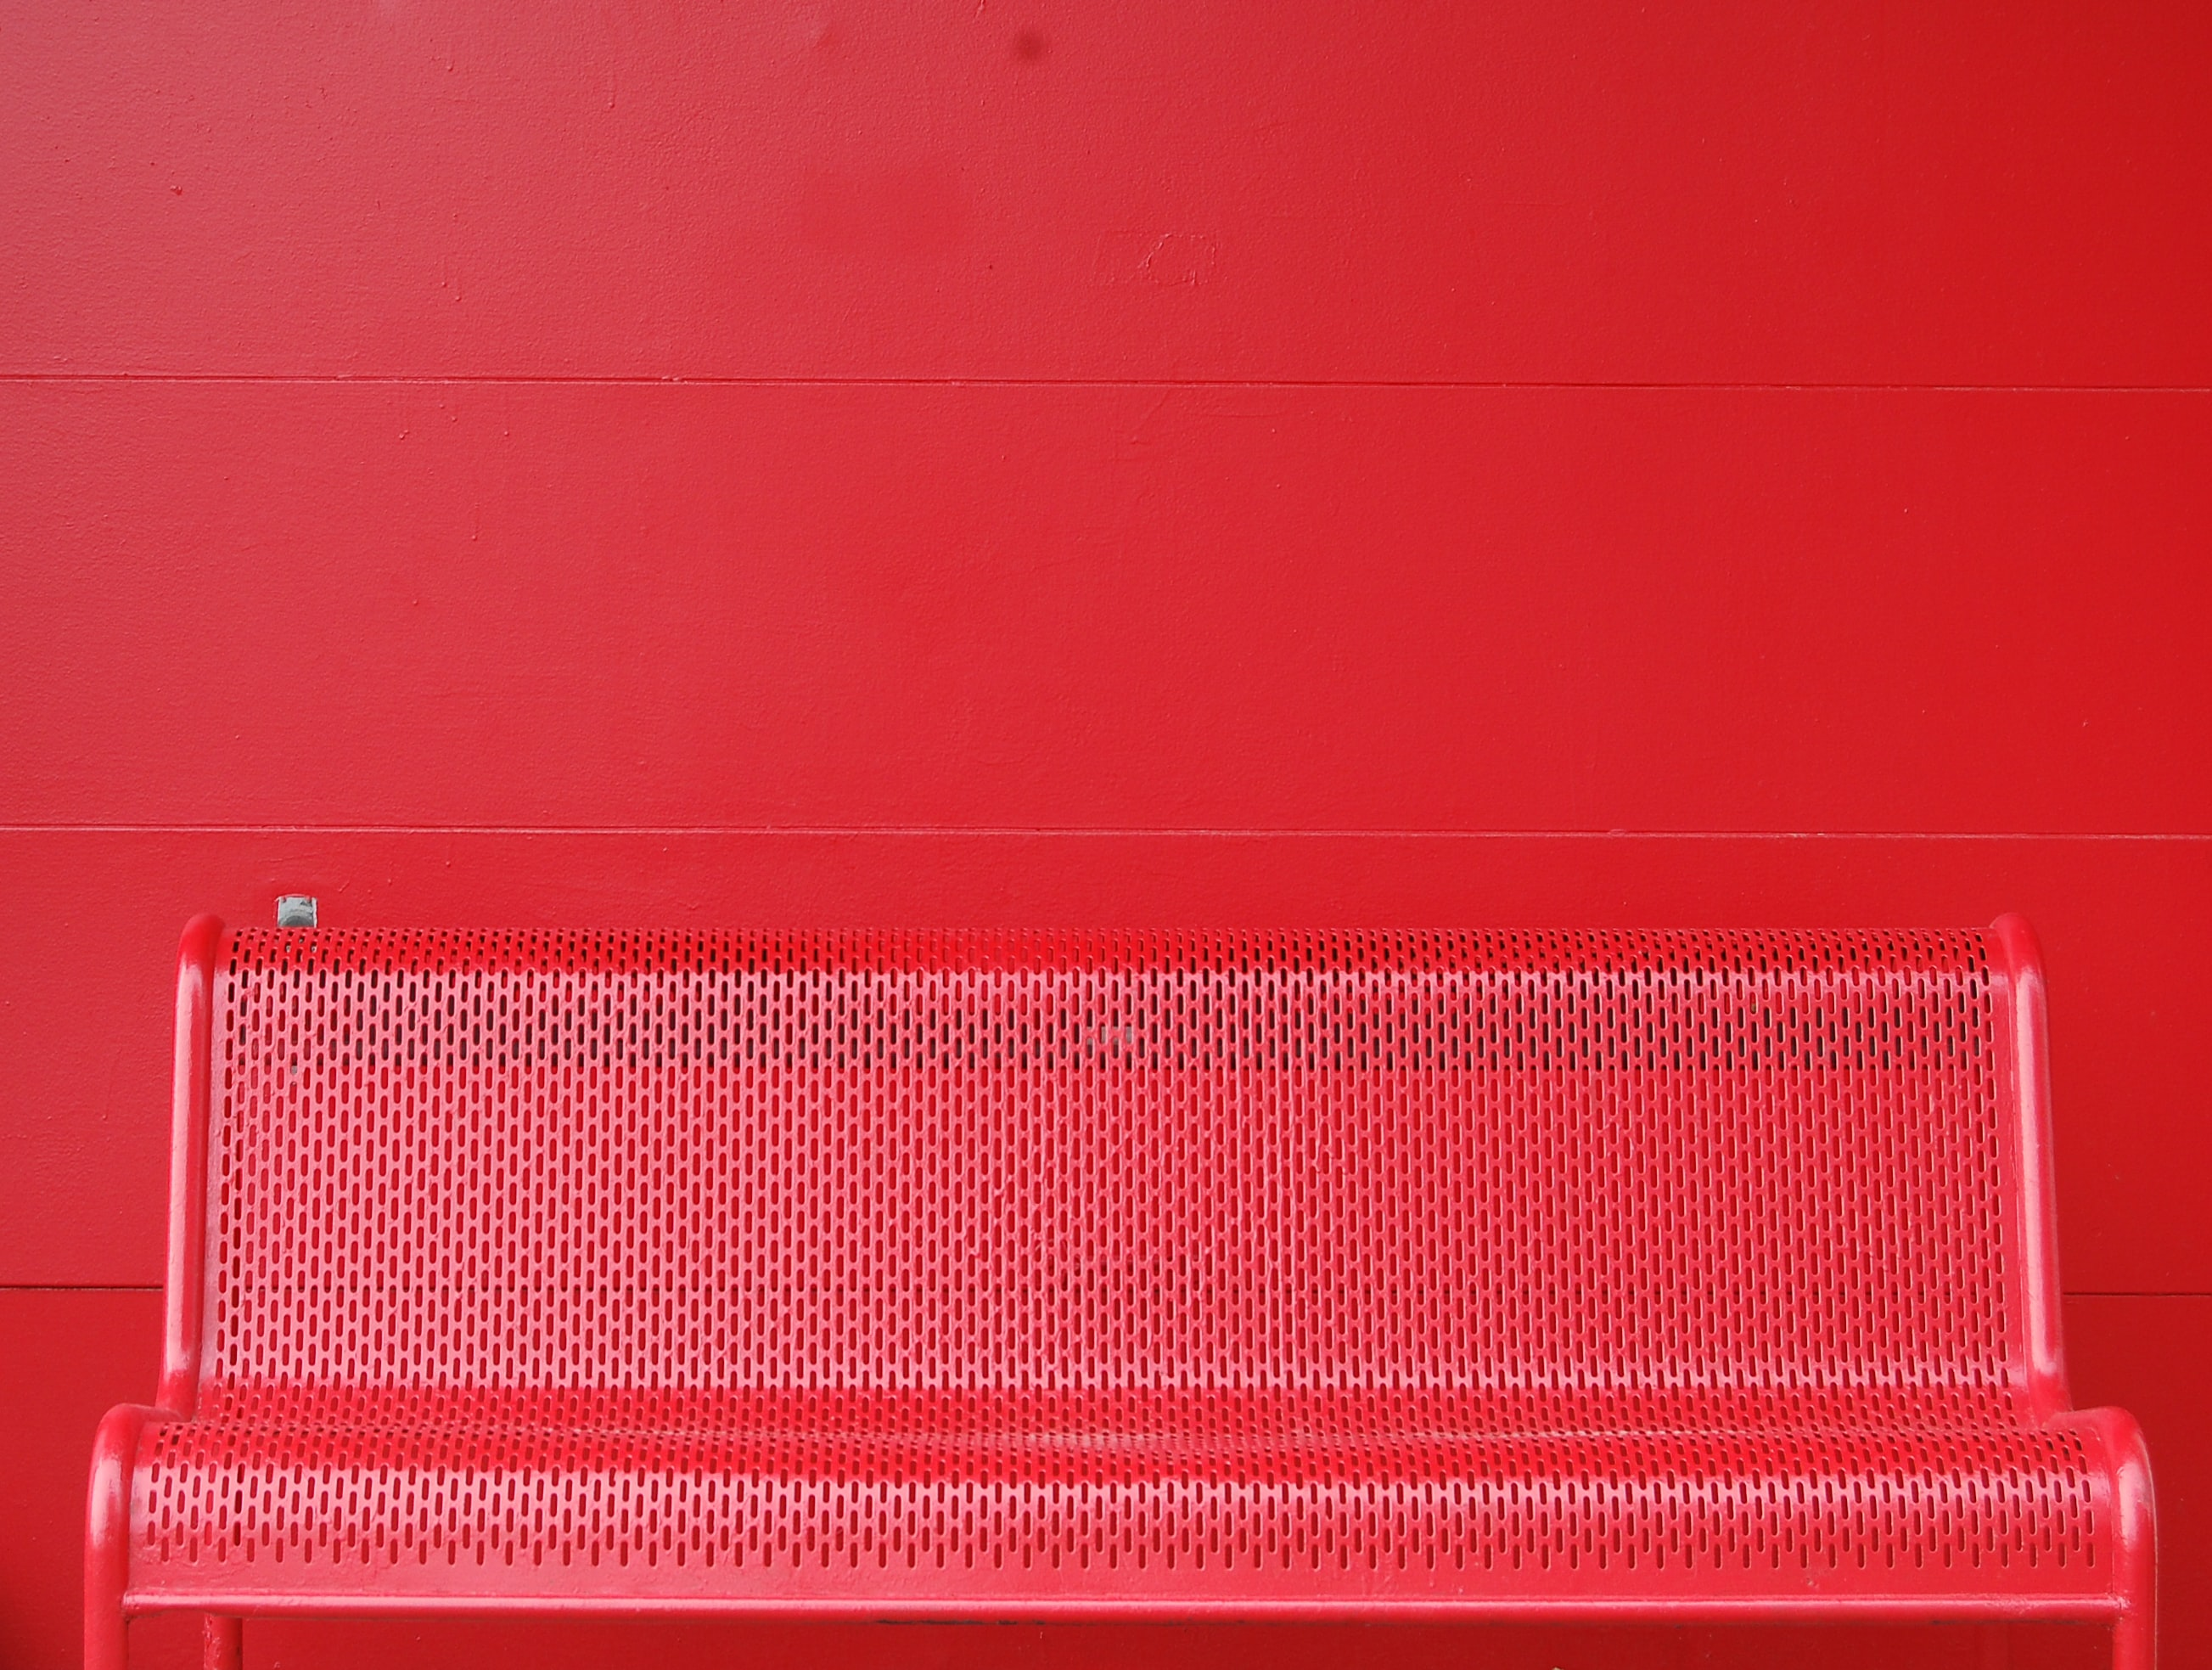 red metal bench